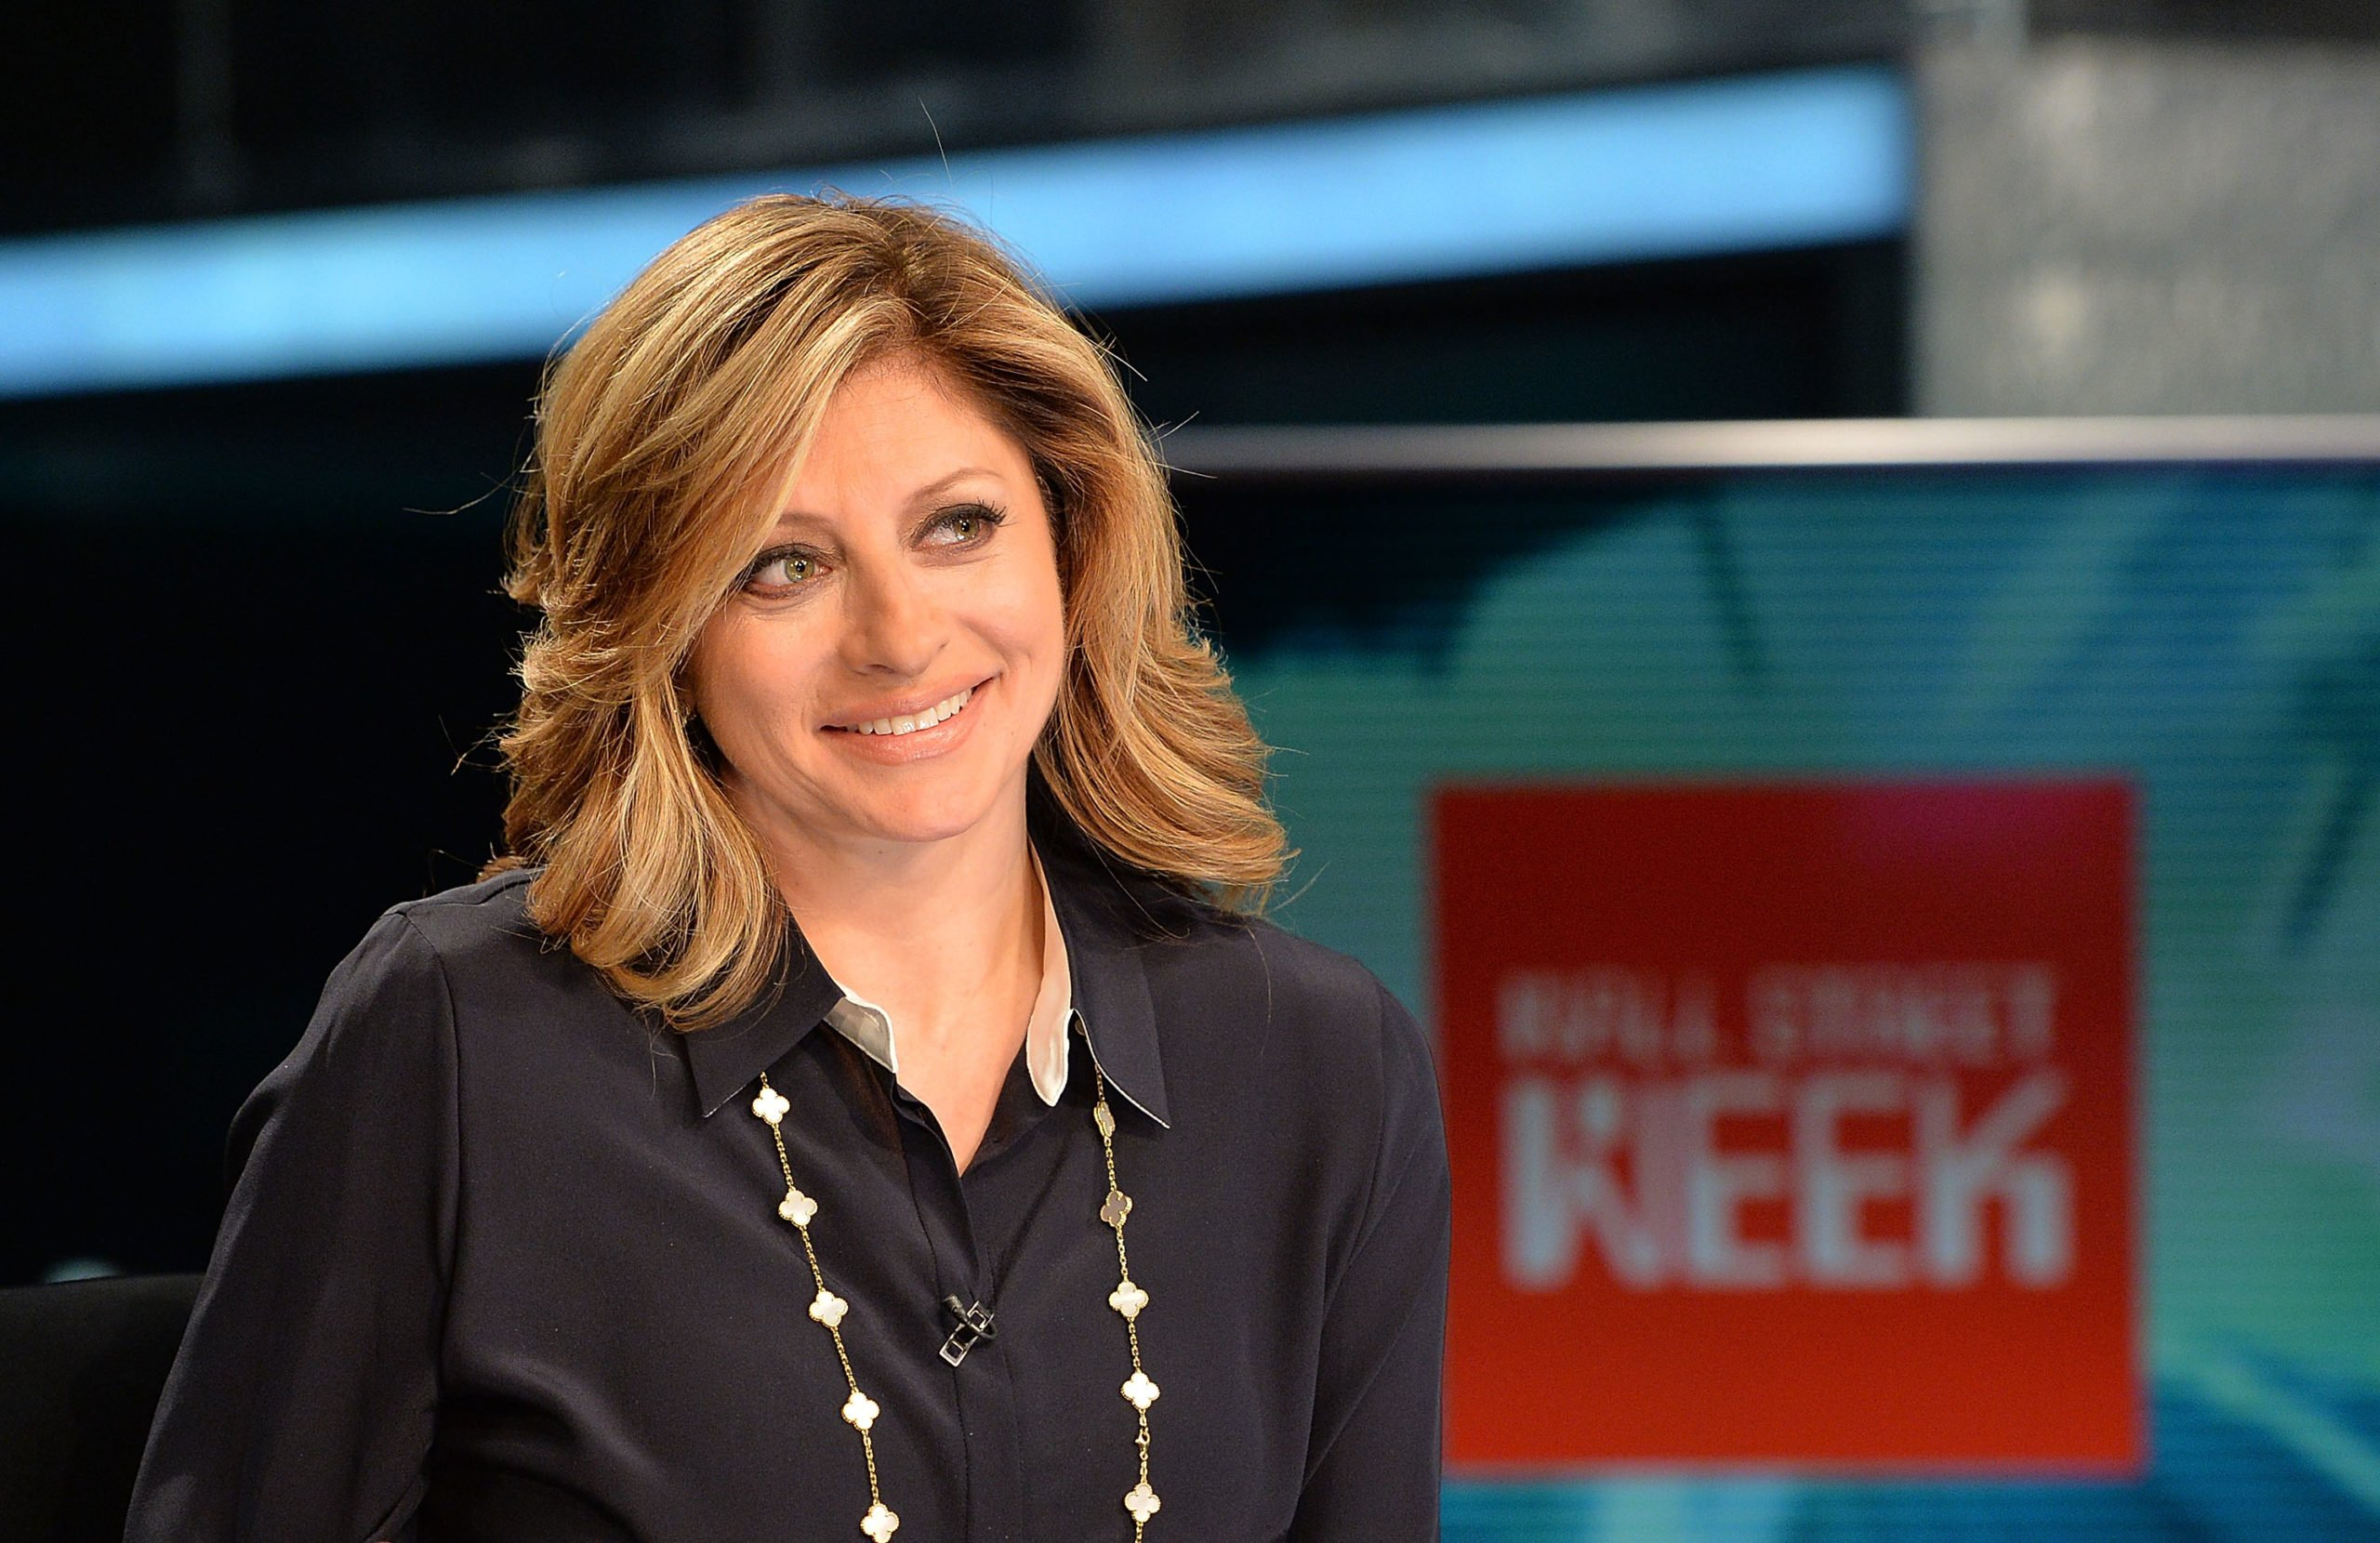 """Maria Bartiromo hosts FOX Business Network's """"Wall Street Week"""" at FOX Studios on April 27, 2016 in New York City. (Slaven Vlasic/Getty Images)"""